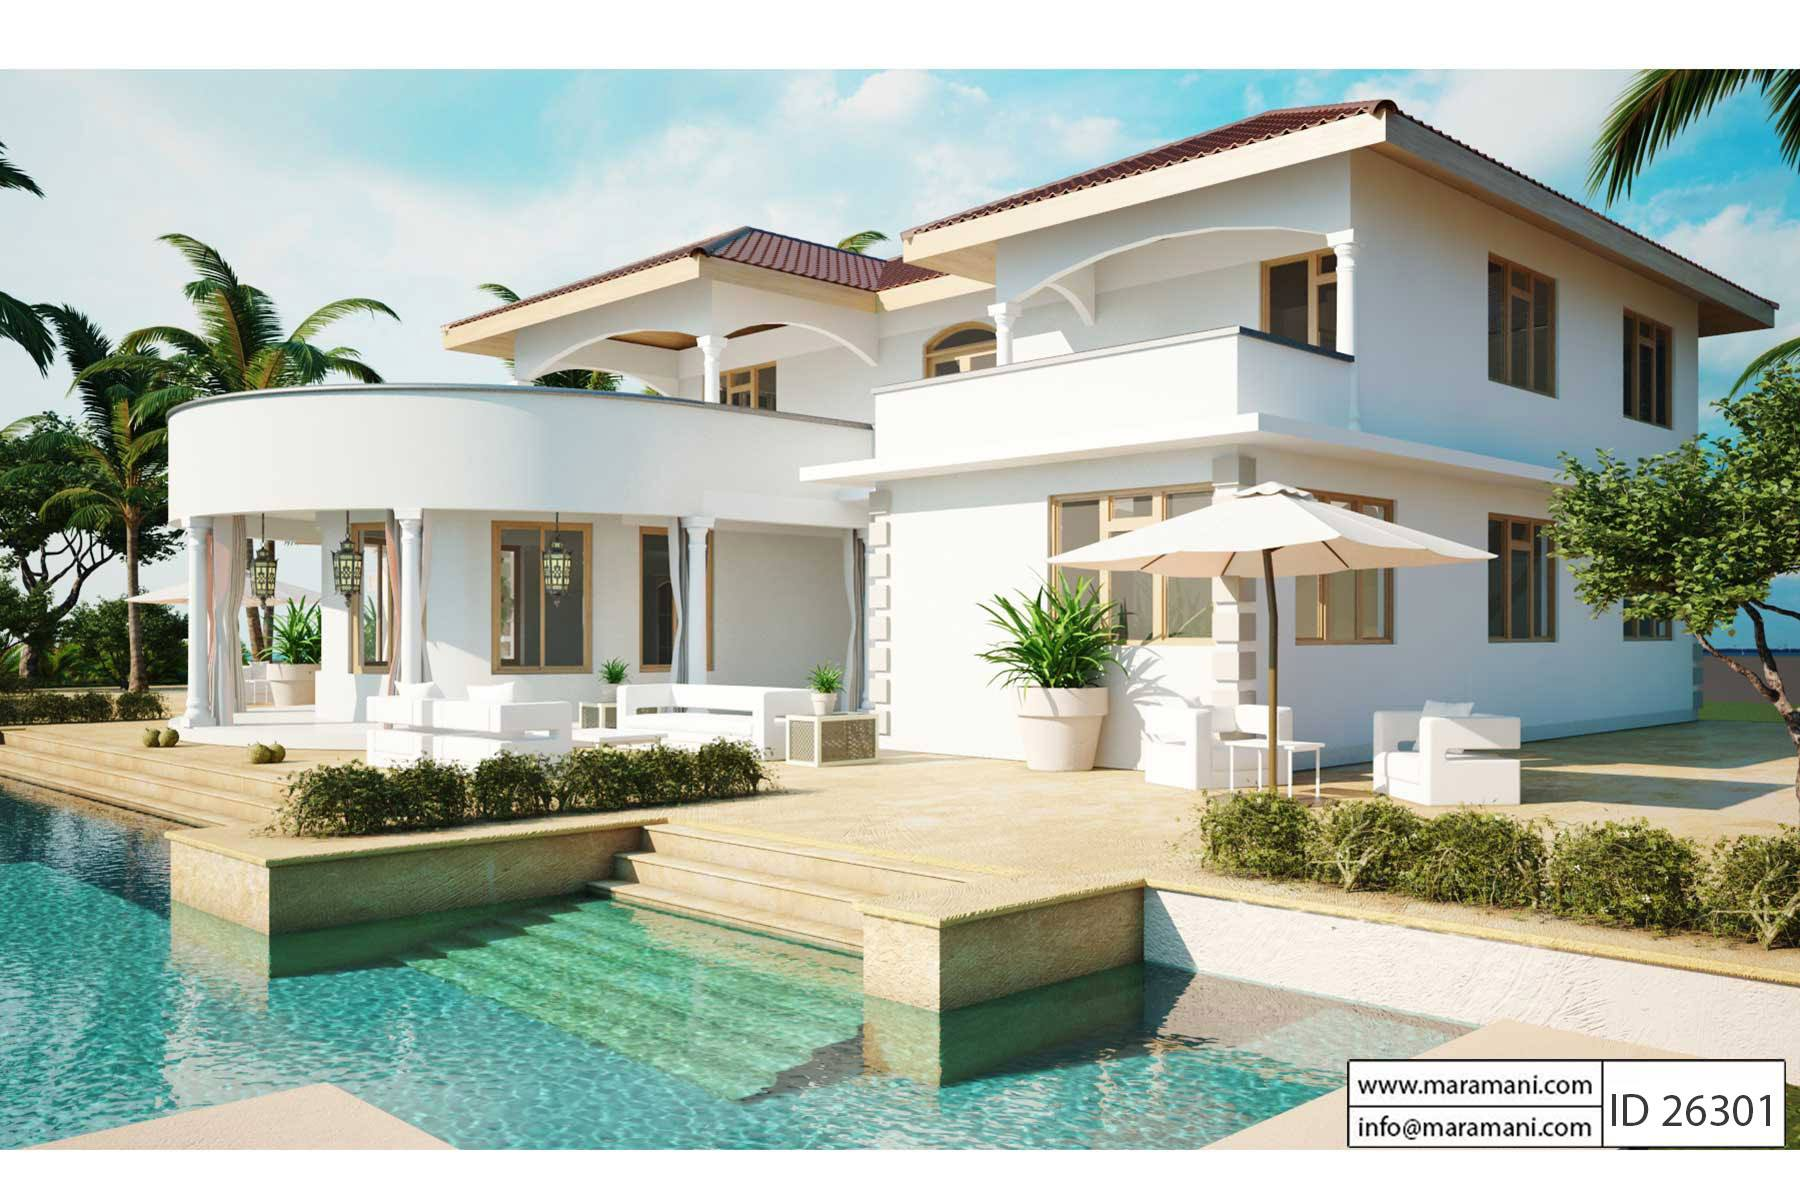 2 Story House Plans with Pool